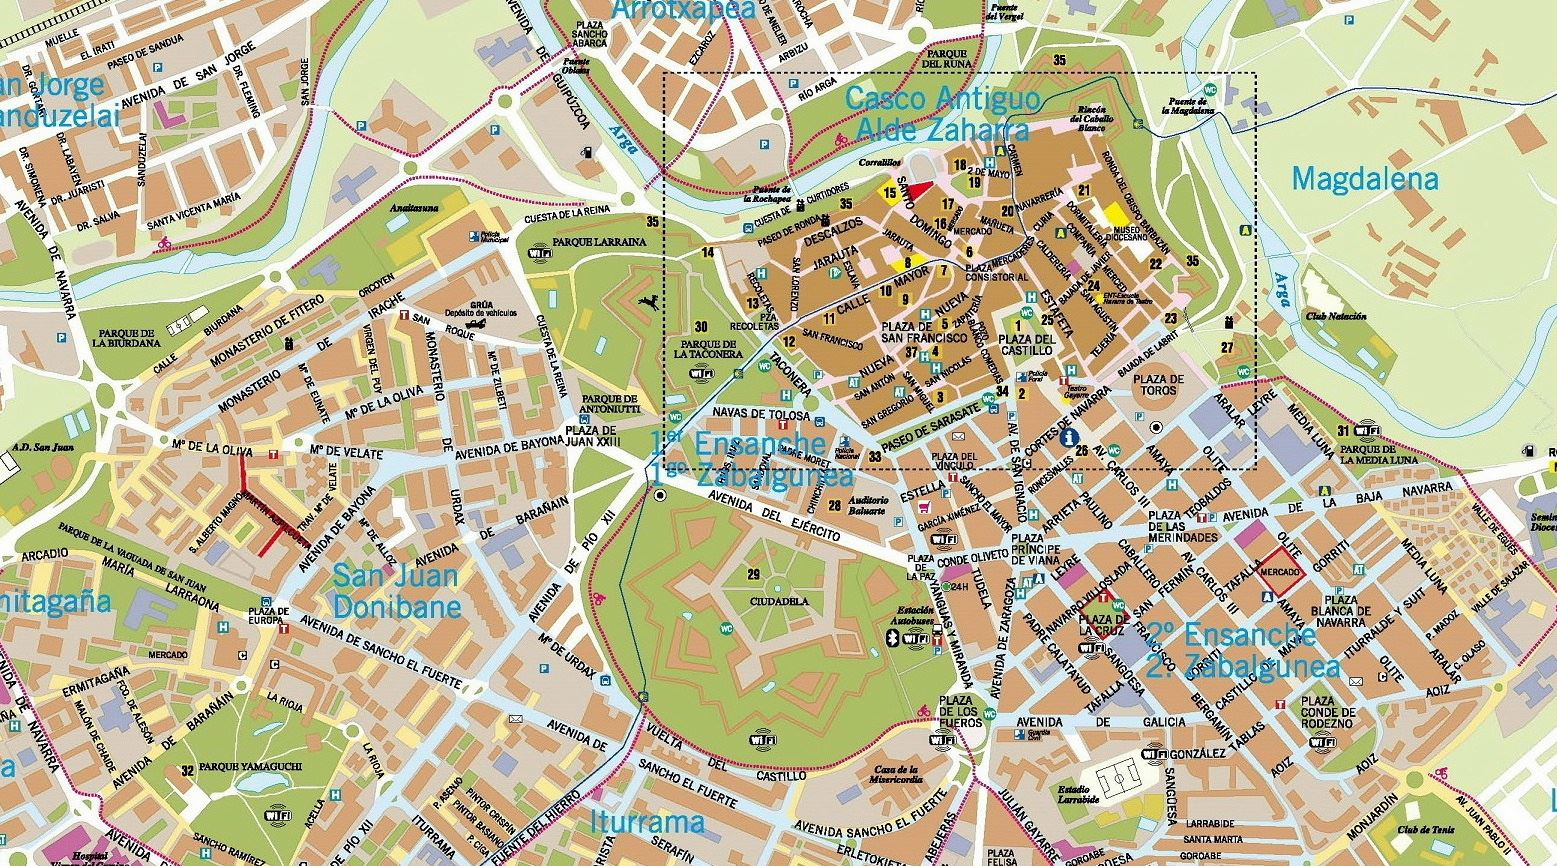 Map Of Spain Pamplona.Large Pamplona Maps For Free Download And Print High